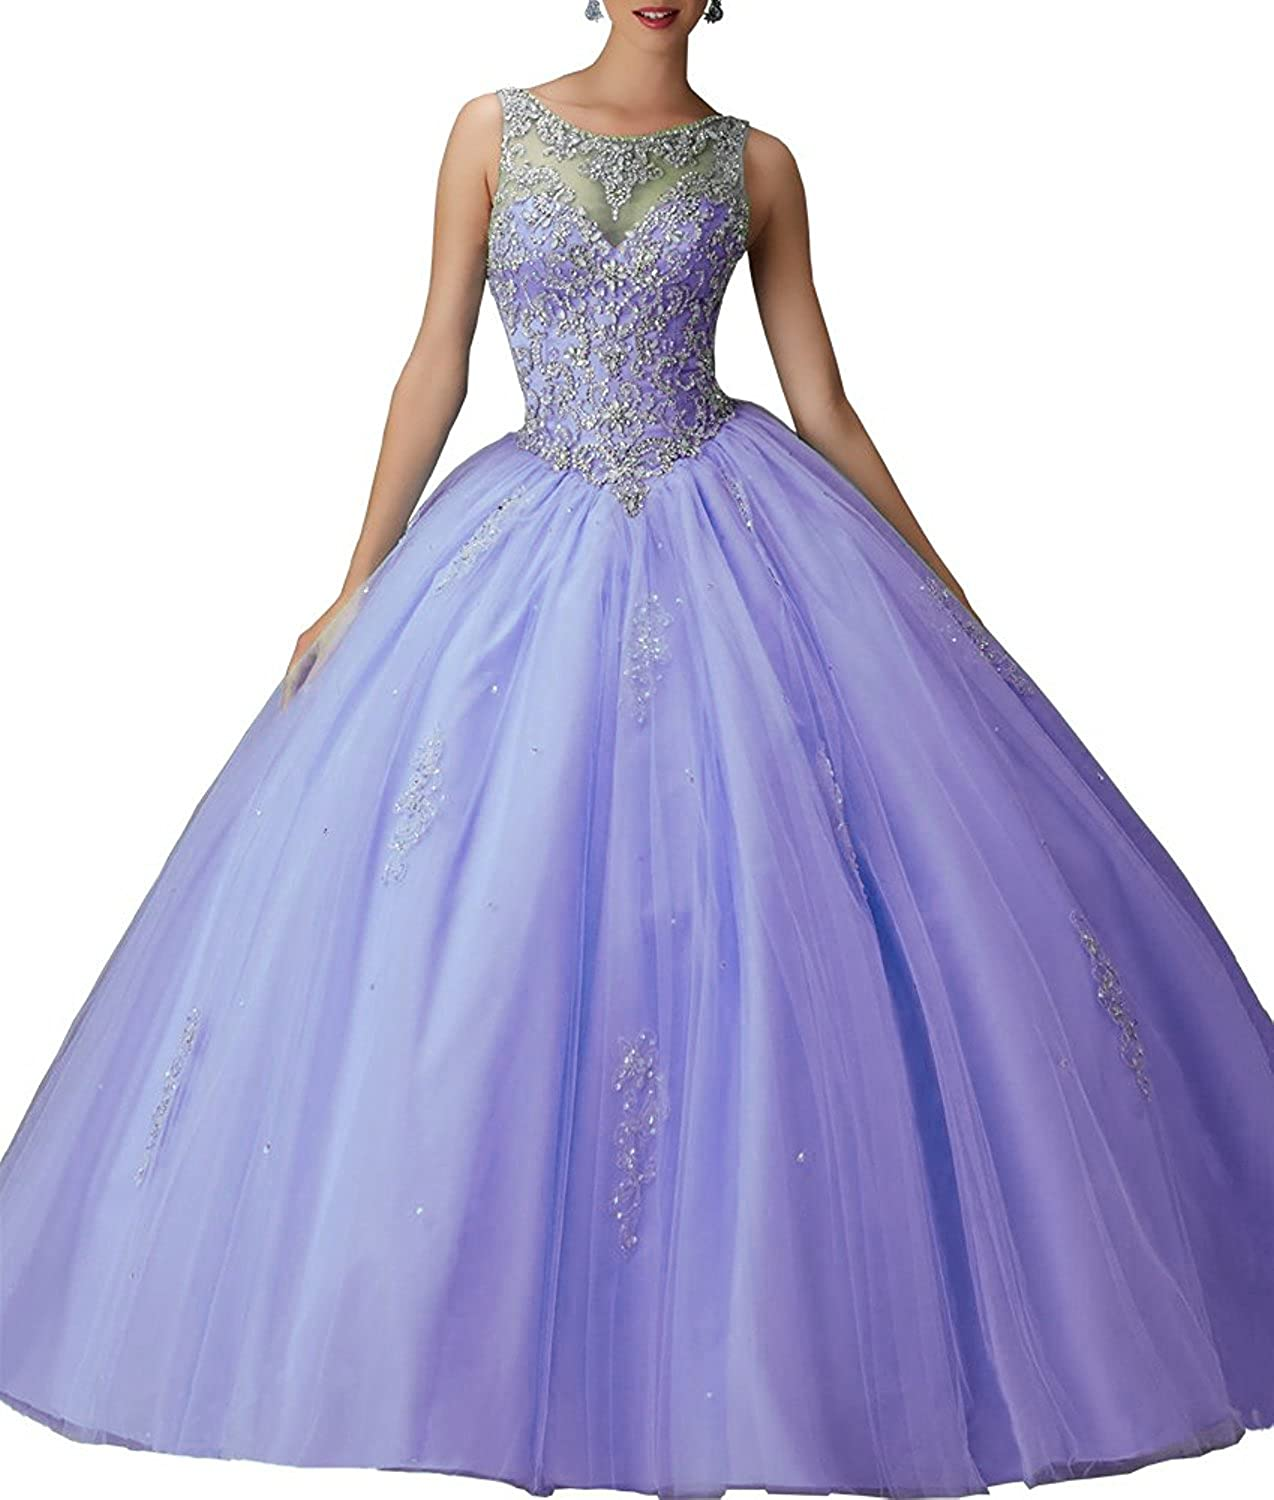 Lavender XSWPL Girls Sweet 16 Birthday Party Dress Ball Gown Beads Prom Quinceanera Dresses